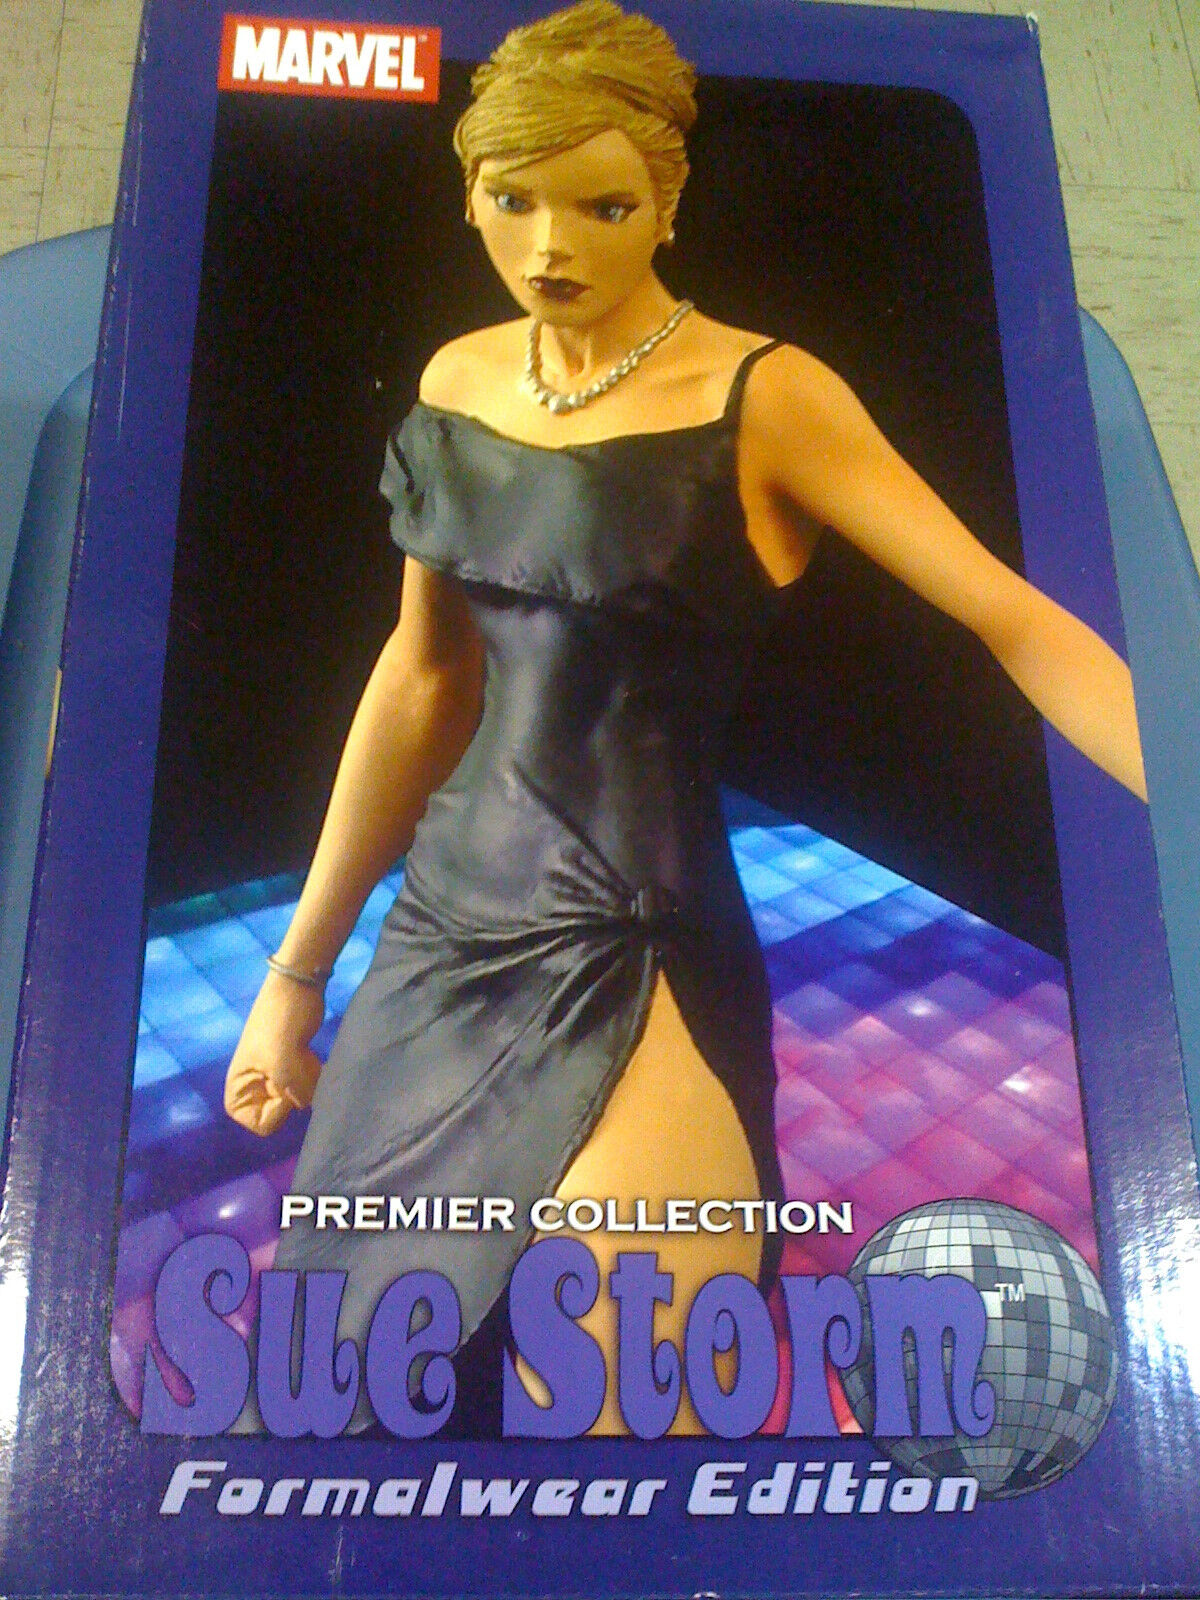 Marvel Sue Storm Formal Wear Limited Edition Statue 56 1000 NEW FREE SHIP US